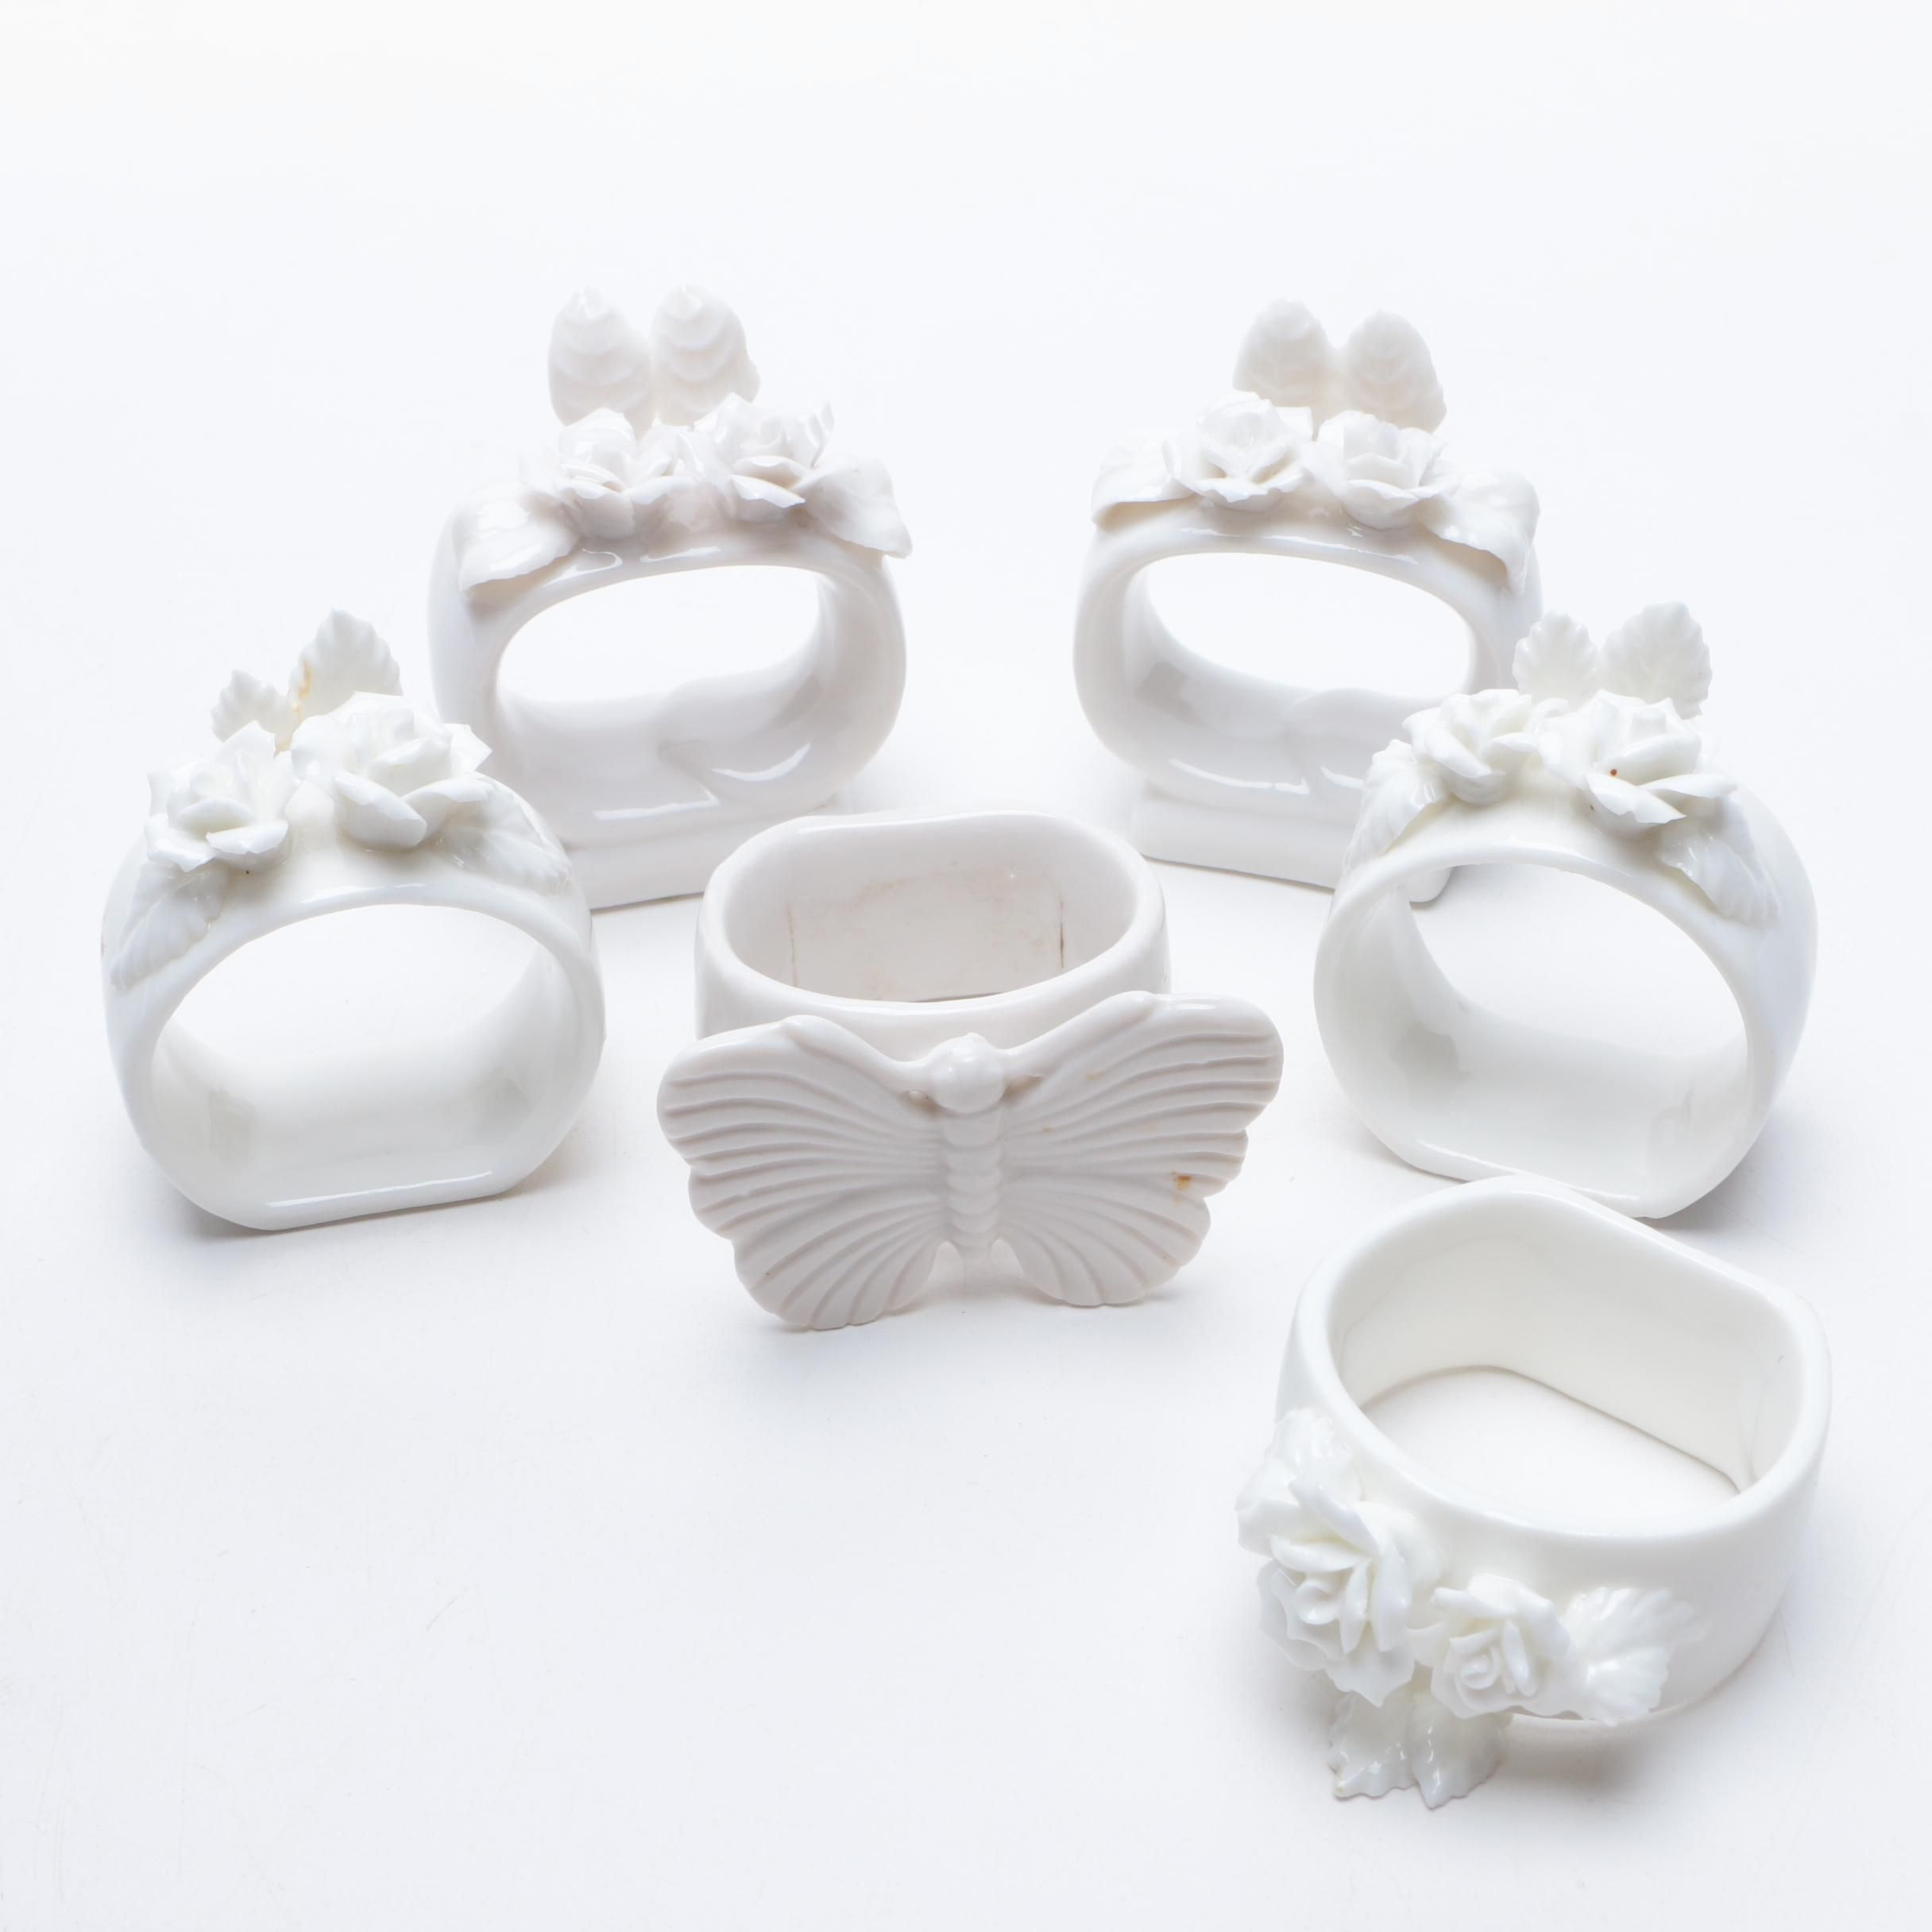 Porcelain Napkin Rings With Rose and Butterfly Motifs